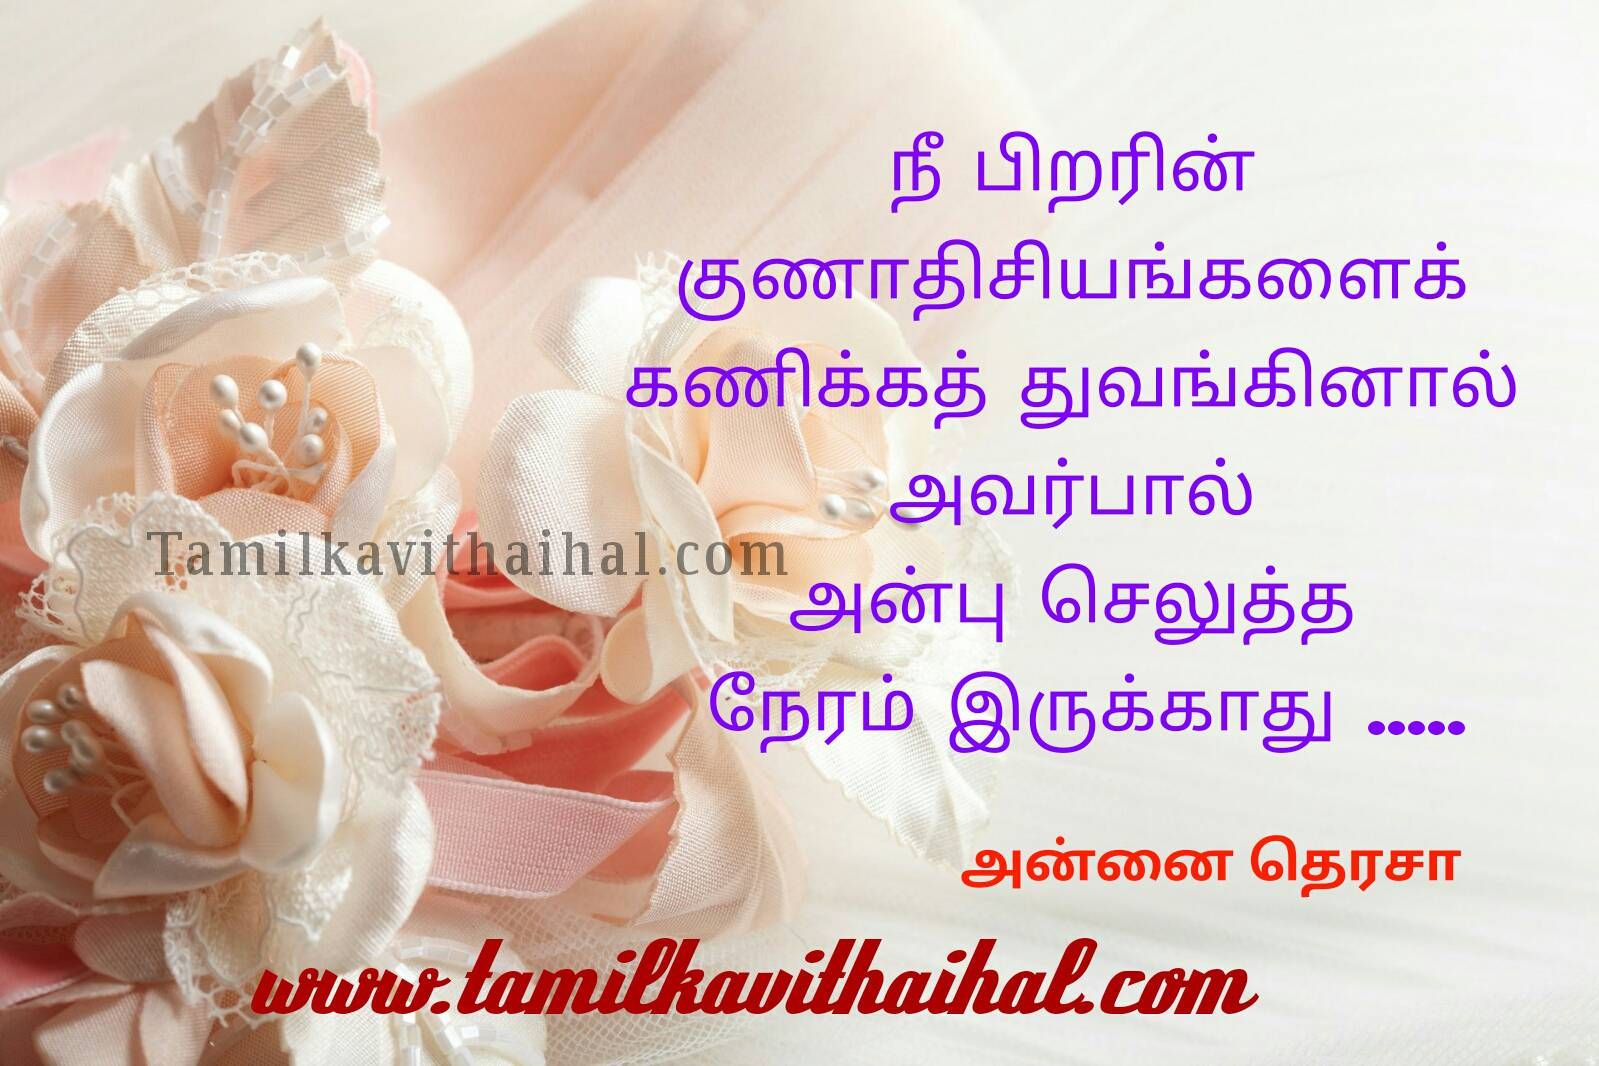 Best motivation quotes mother therasa golden words in tamil kavithai hd image